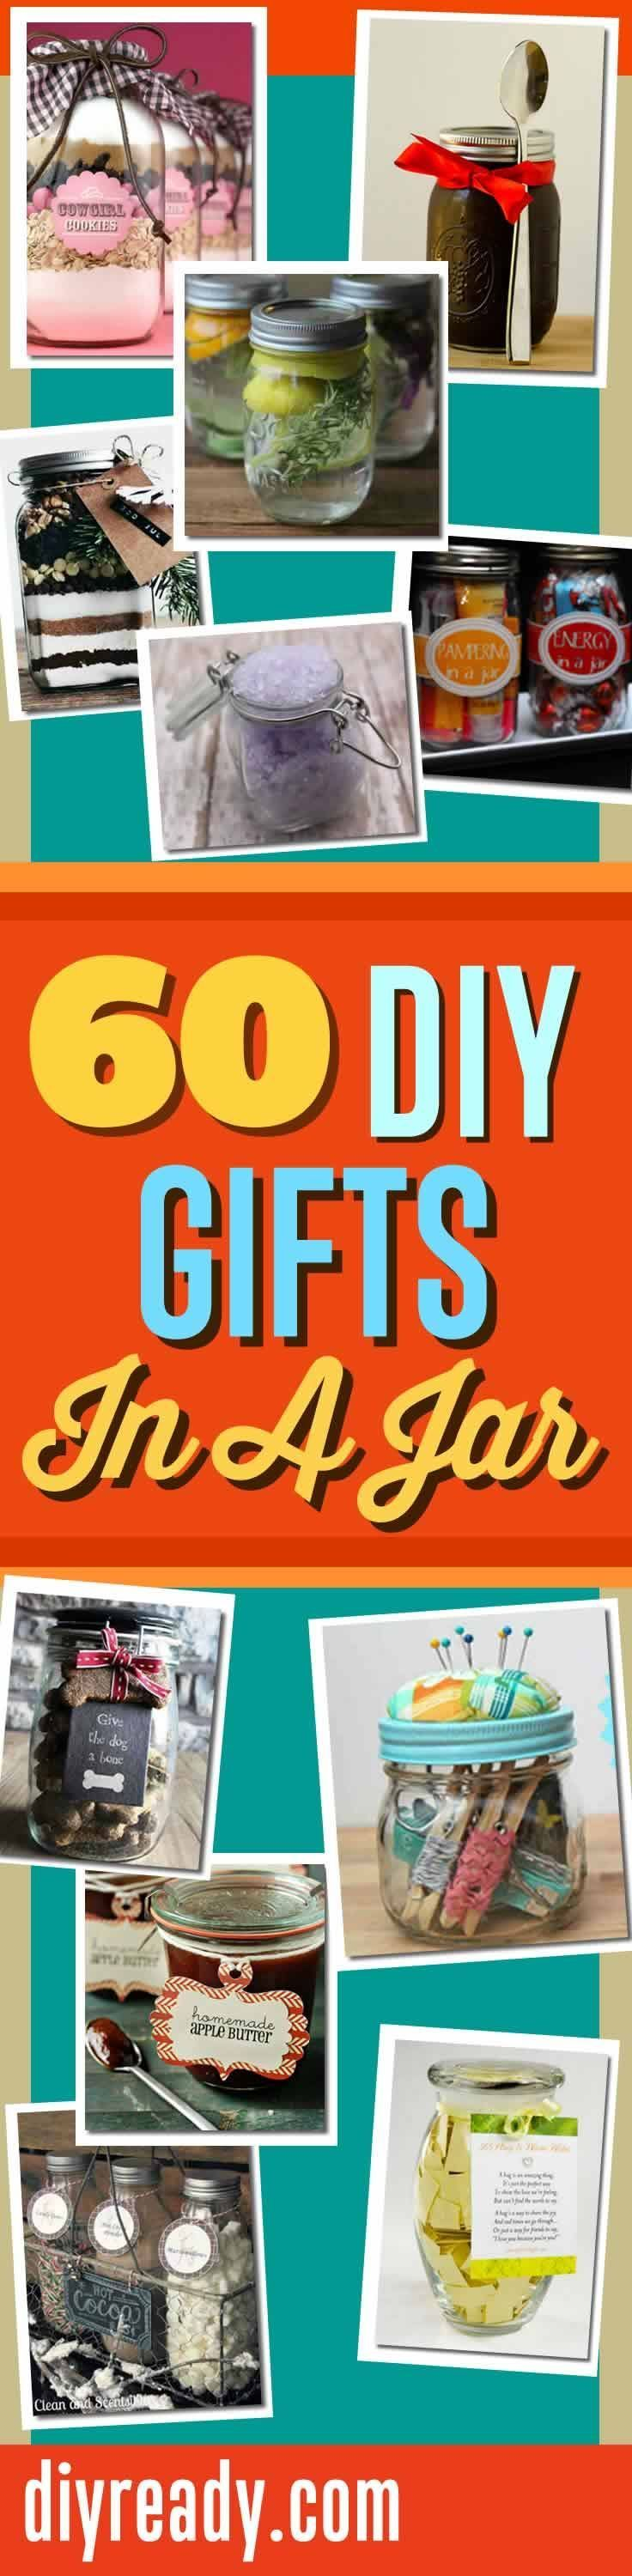 60 Easy Mason Jar Gift Ideas and other Cool Homemade DIY Gifts you put in a Jar. Quick, easy and cute favorites. DIY Projects and Crafts at DIY Ready http://diyready.com/60-cute-and-easy-diy-gifts-in-a-jar-christmas-gift-ideas/